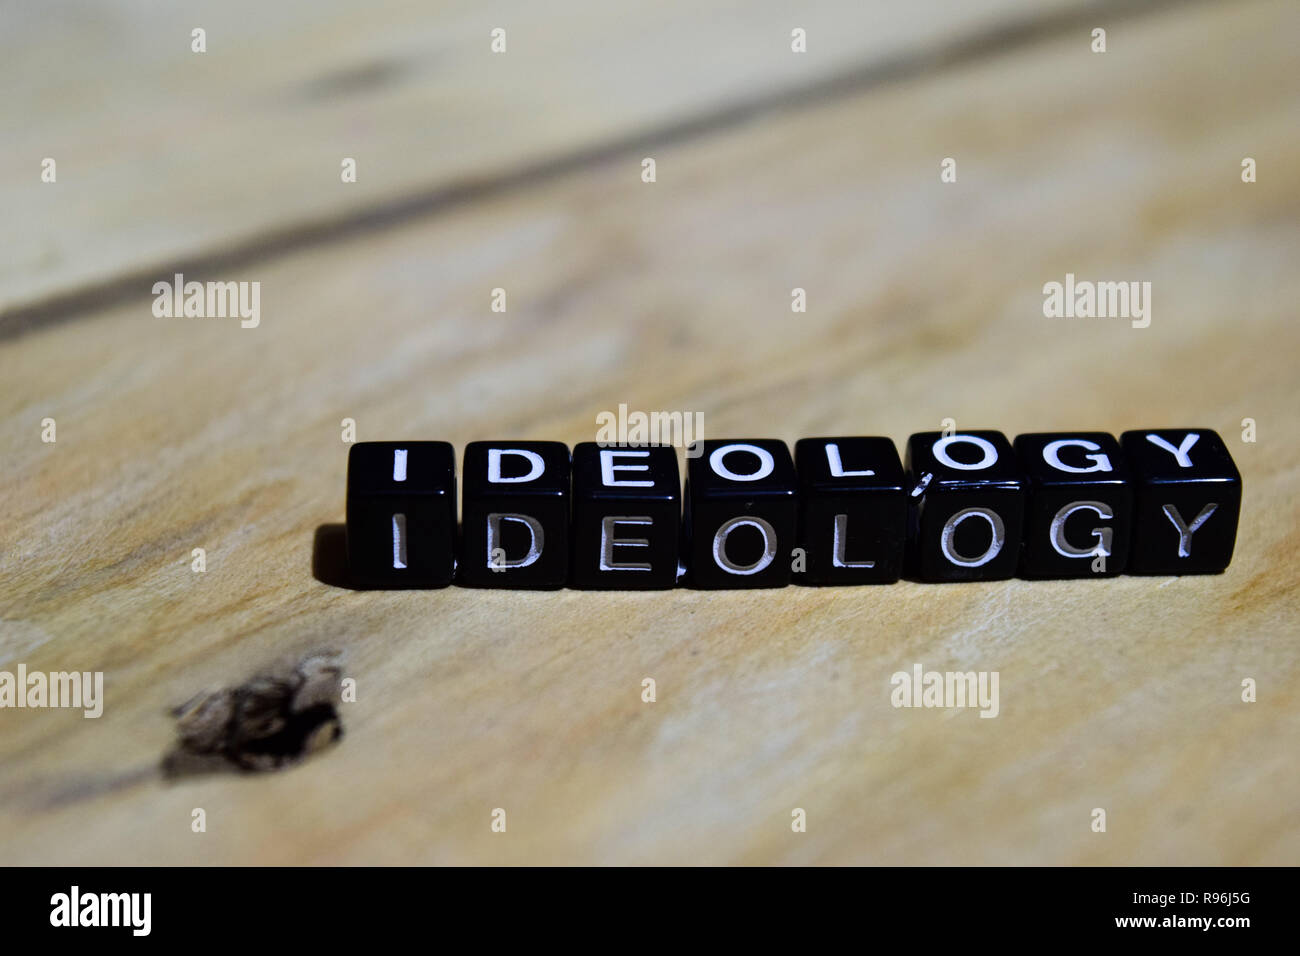 Ideology written on wooden blocks. Inspiration and motivation concepts. Cross processed image on Wooden Background - Stock Image